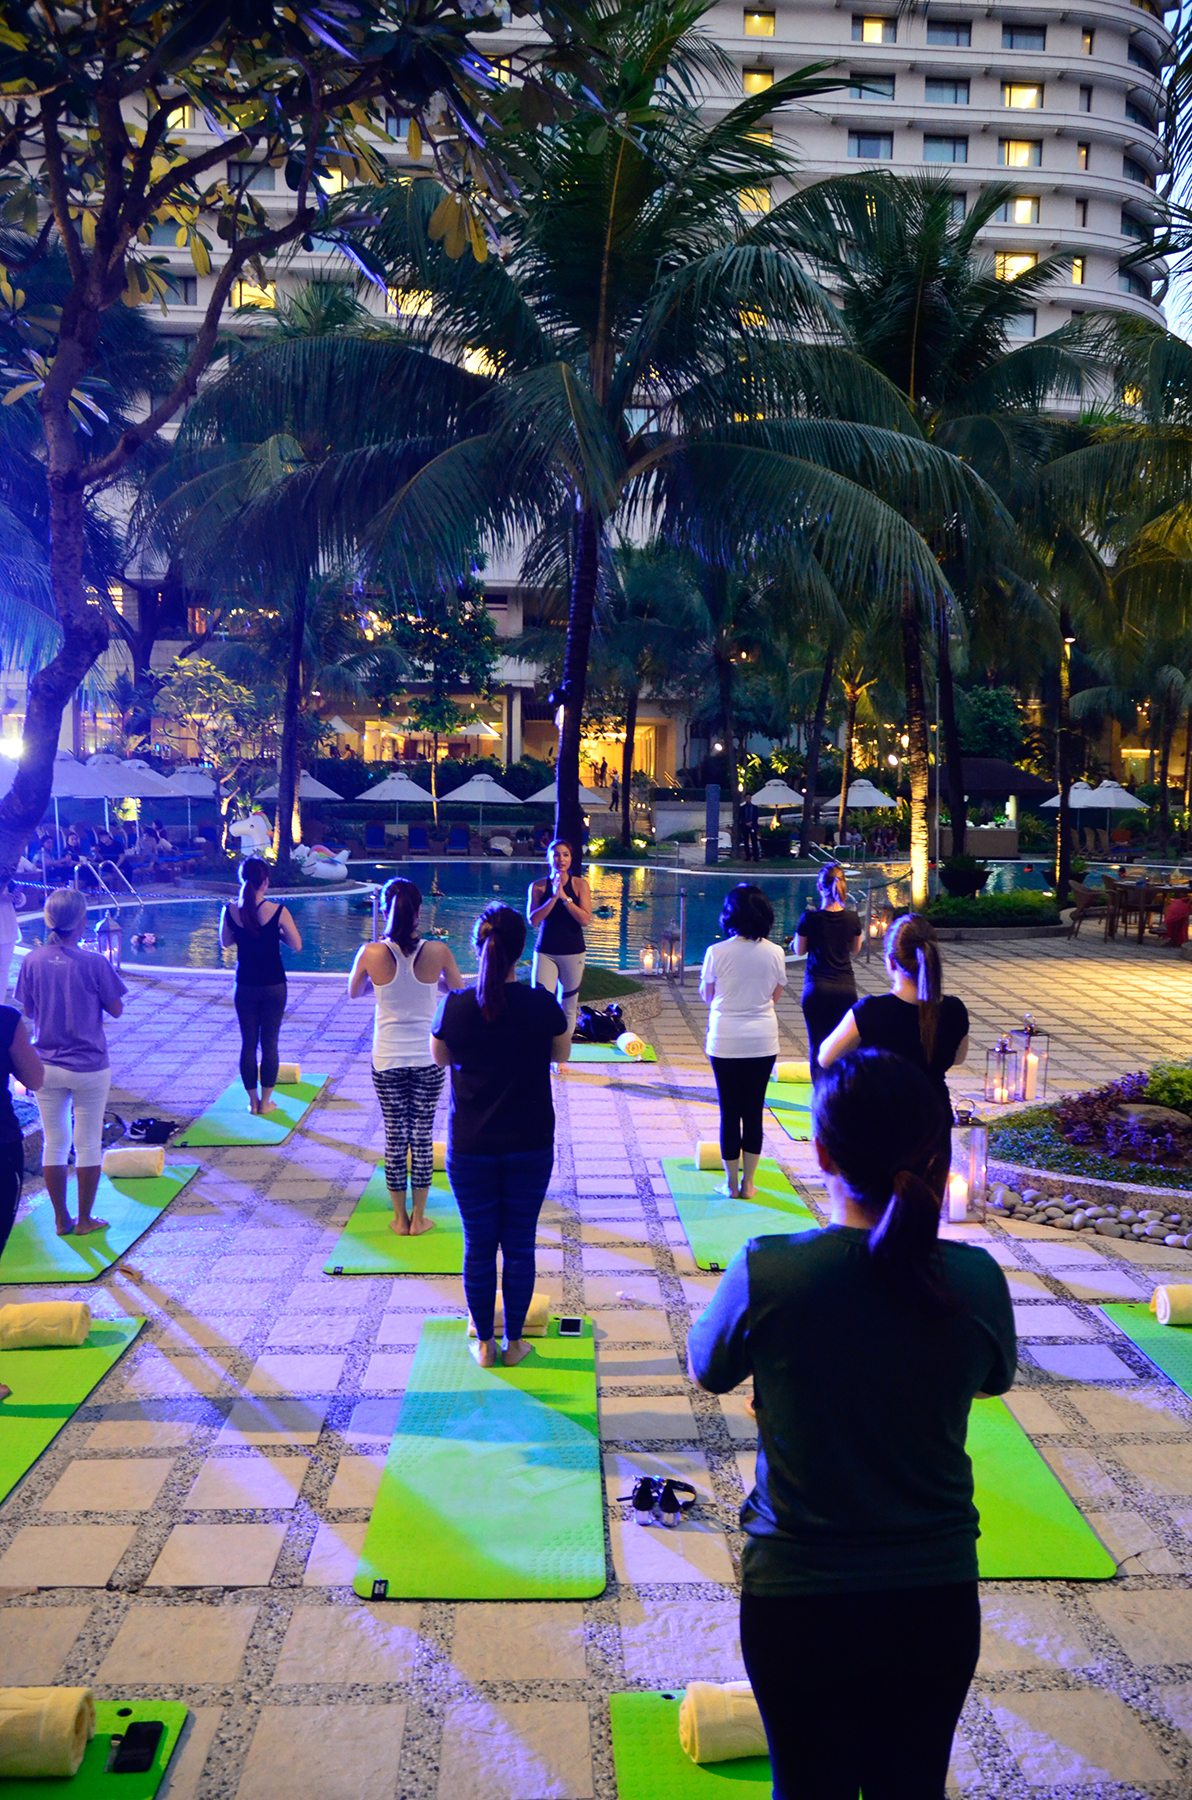 One of the event's highlight was the mindful breathing and candlelight yoga led by Bubbles Paraiso